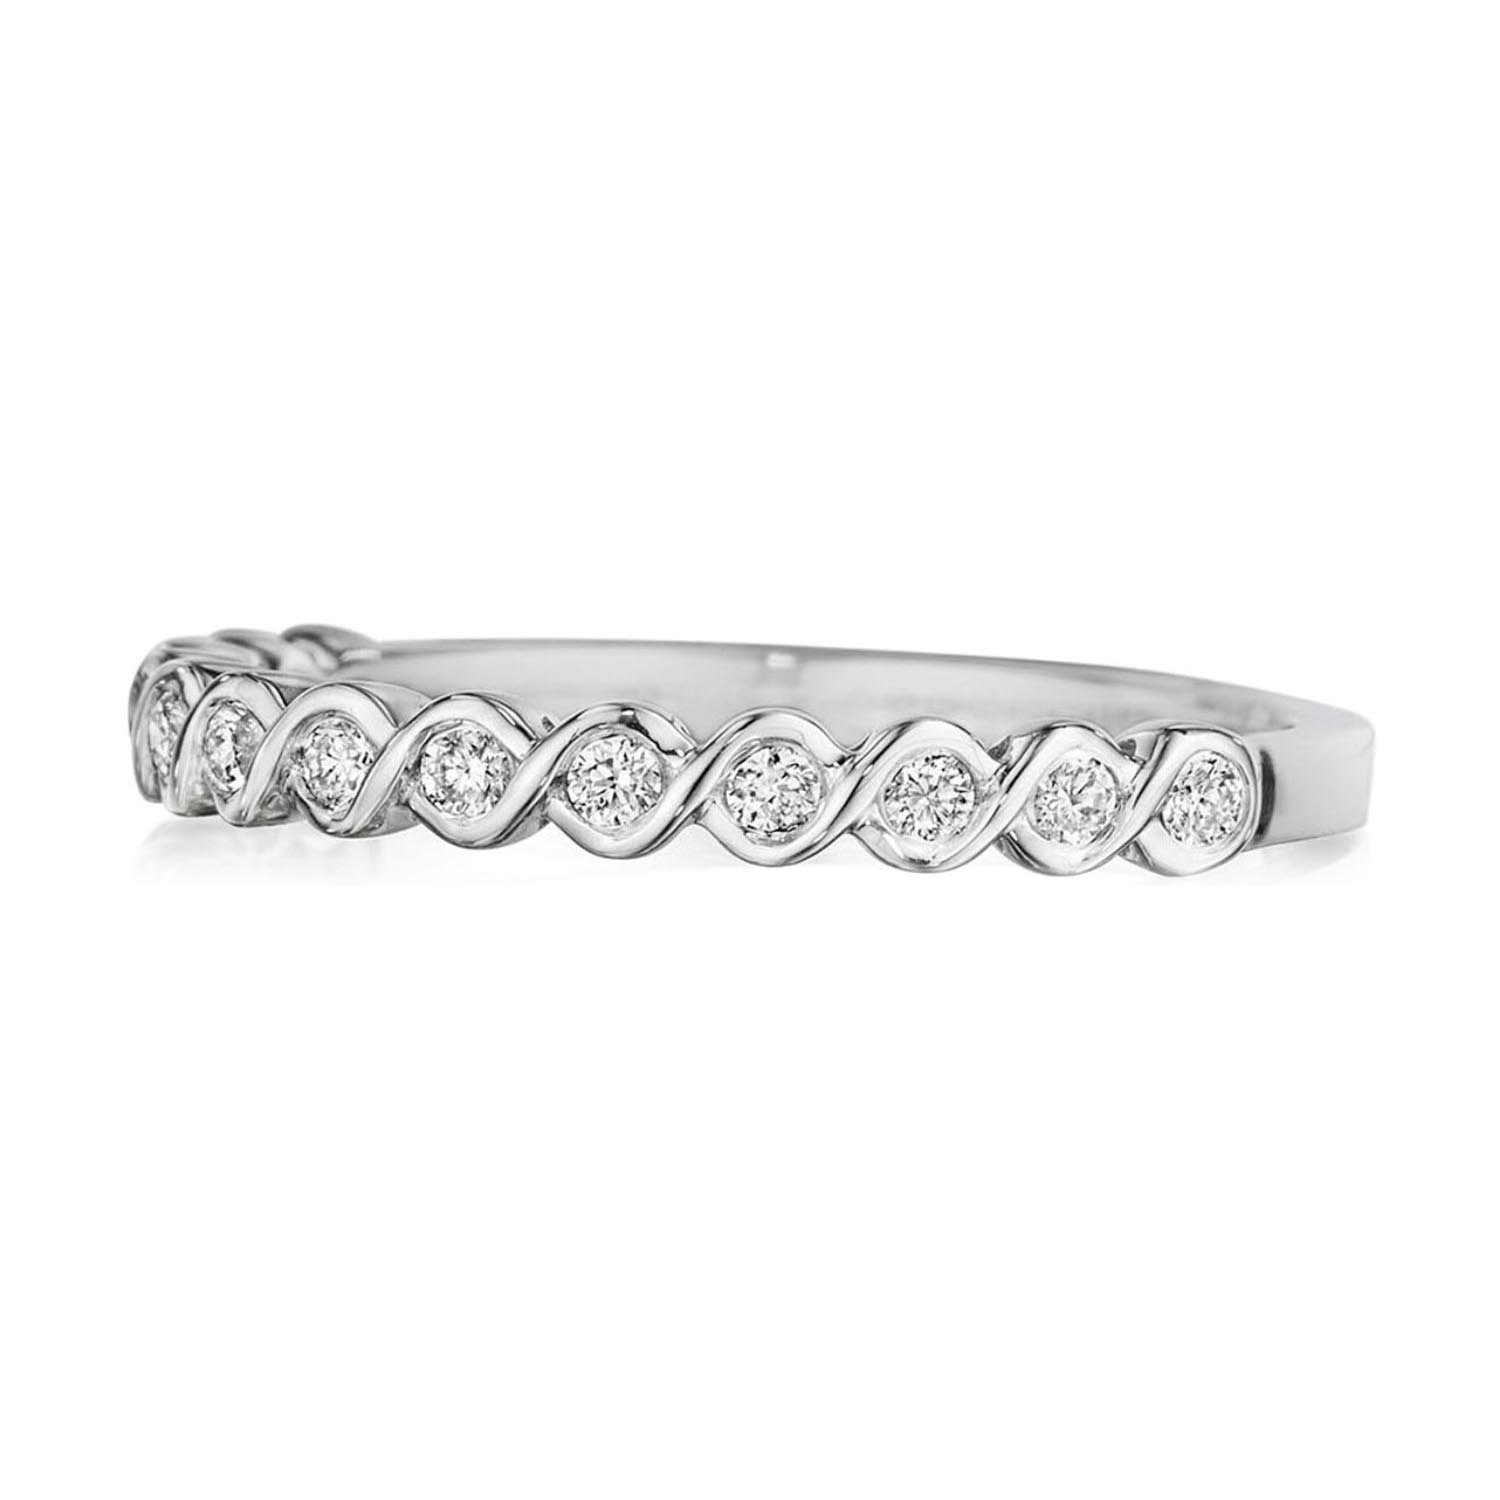 Henri Daussi 14 Karat White Gold Diamond Wedding Band